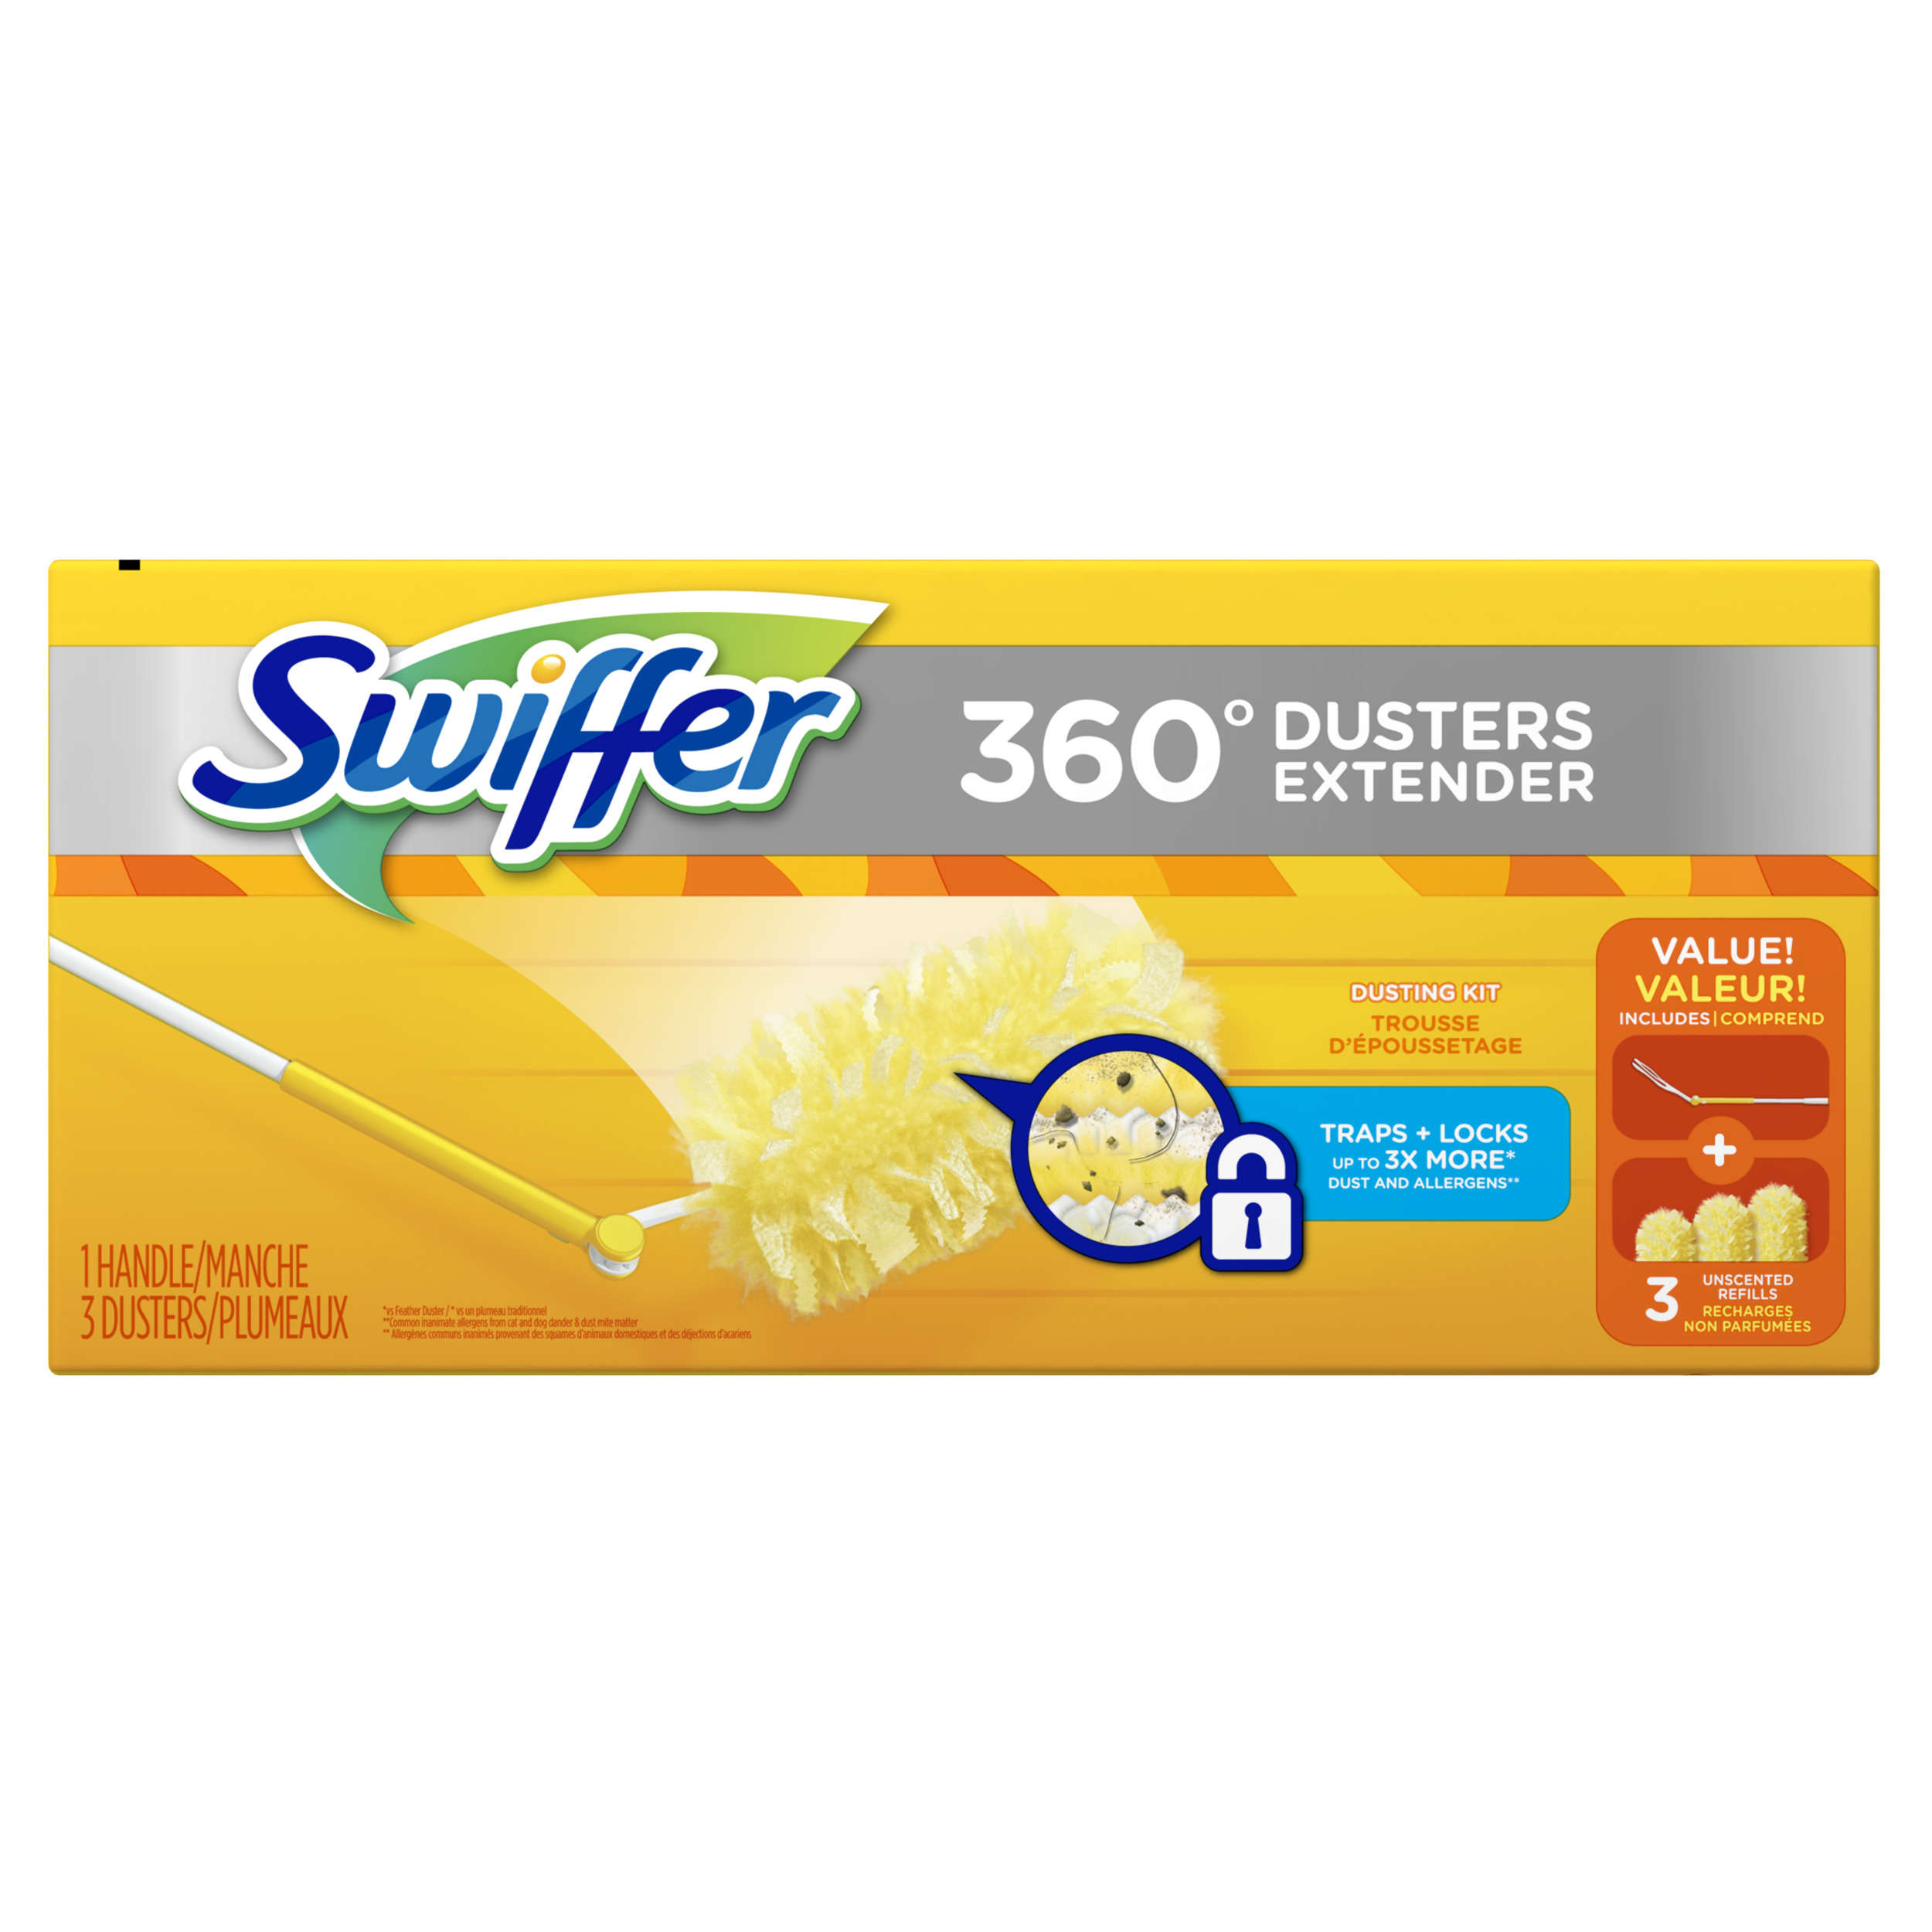 Swiffer 360° Dusters Extender Dusting Kit (1 Handle, 3 Dusters)